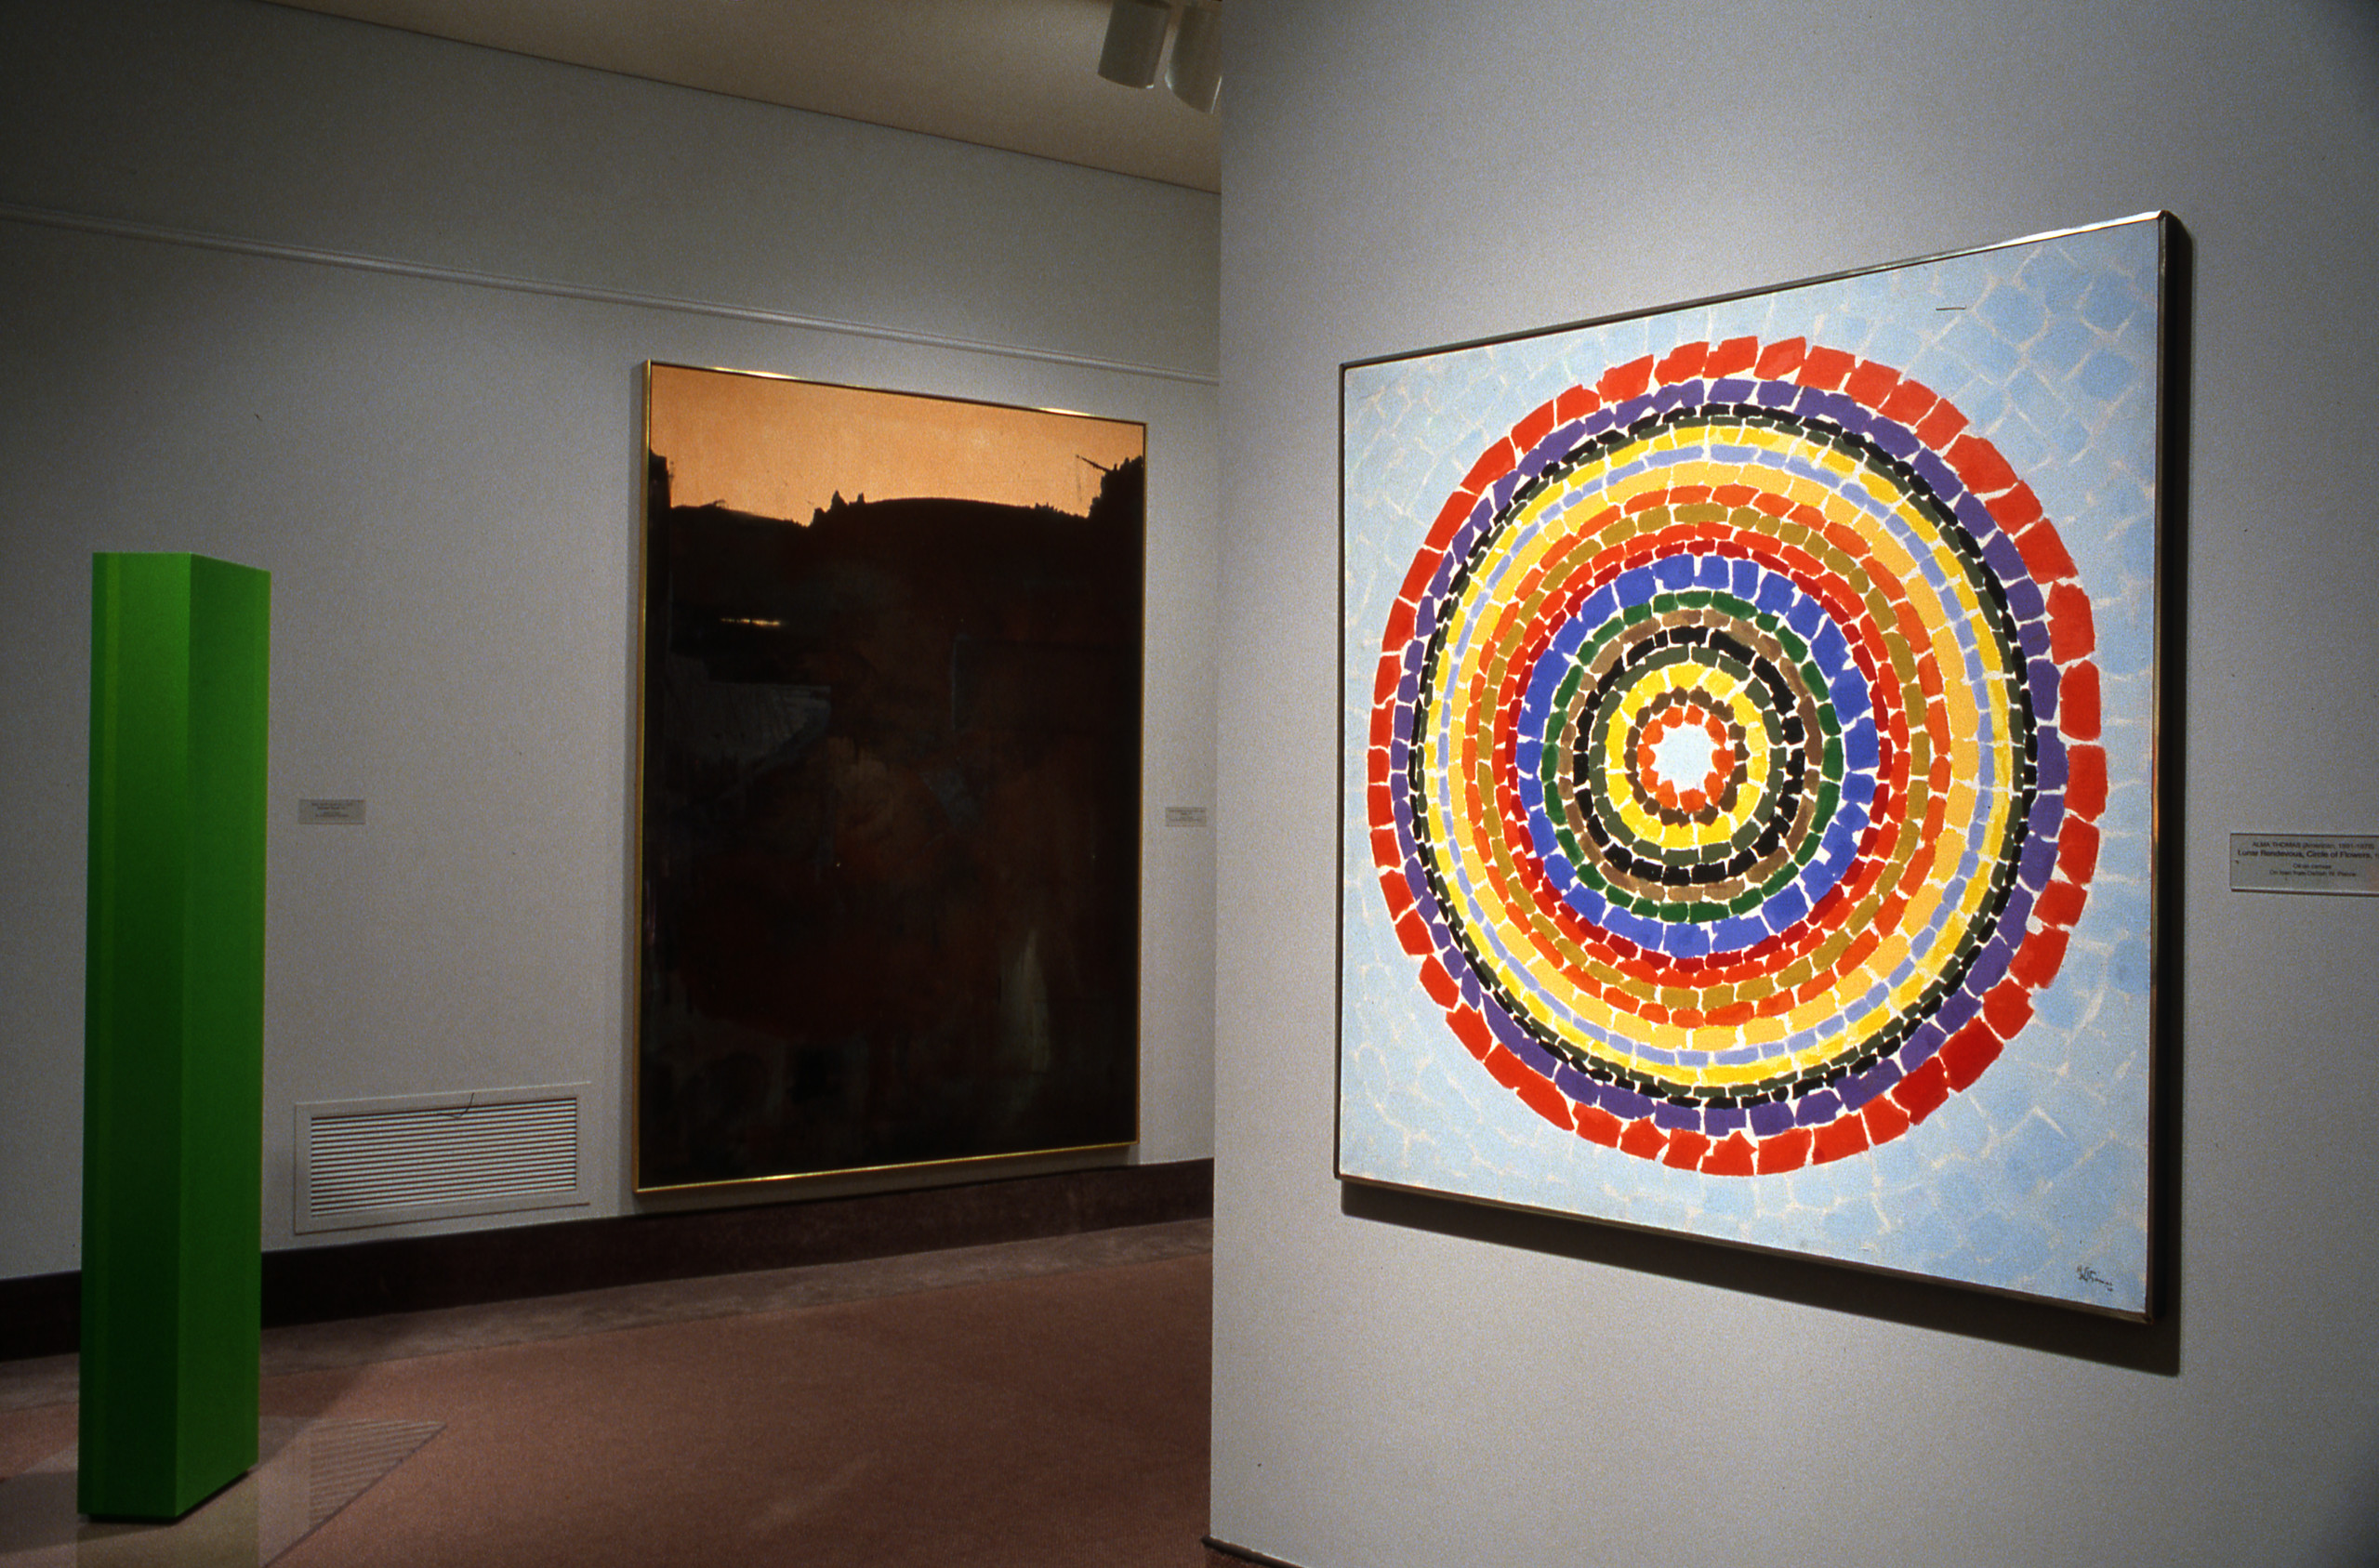 Gallery view of three artworks: a tall green column on the left, a multicolored painting of many concentric circles on the right, and a large black-and-white painting in the background between the two.